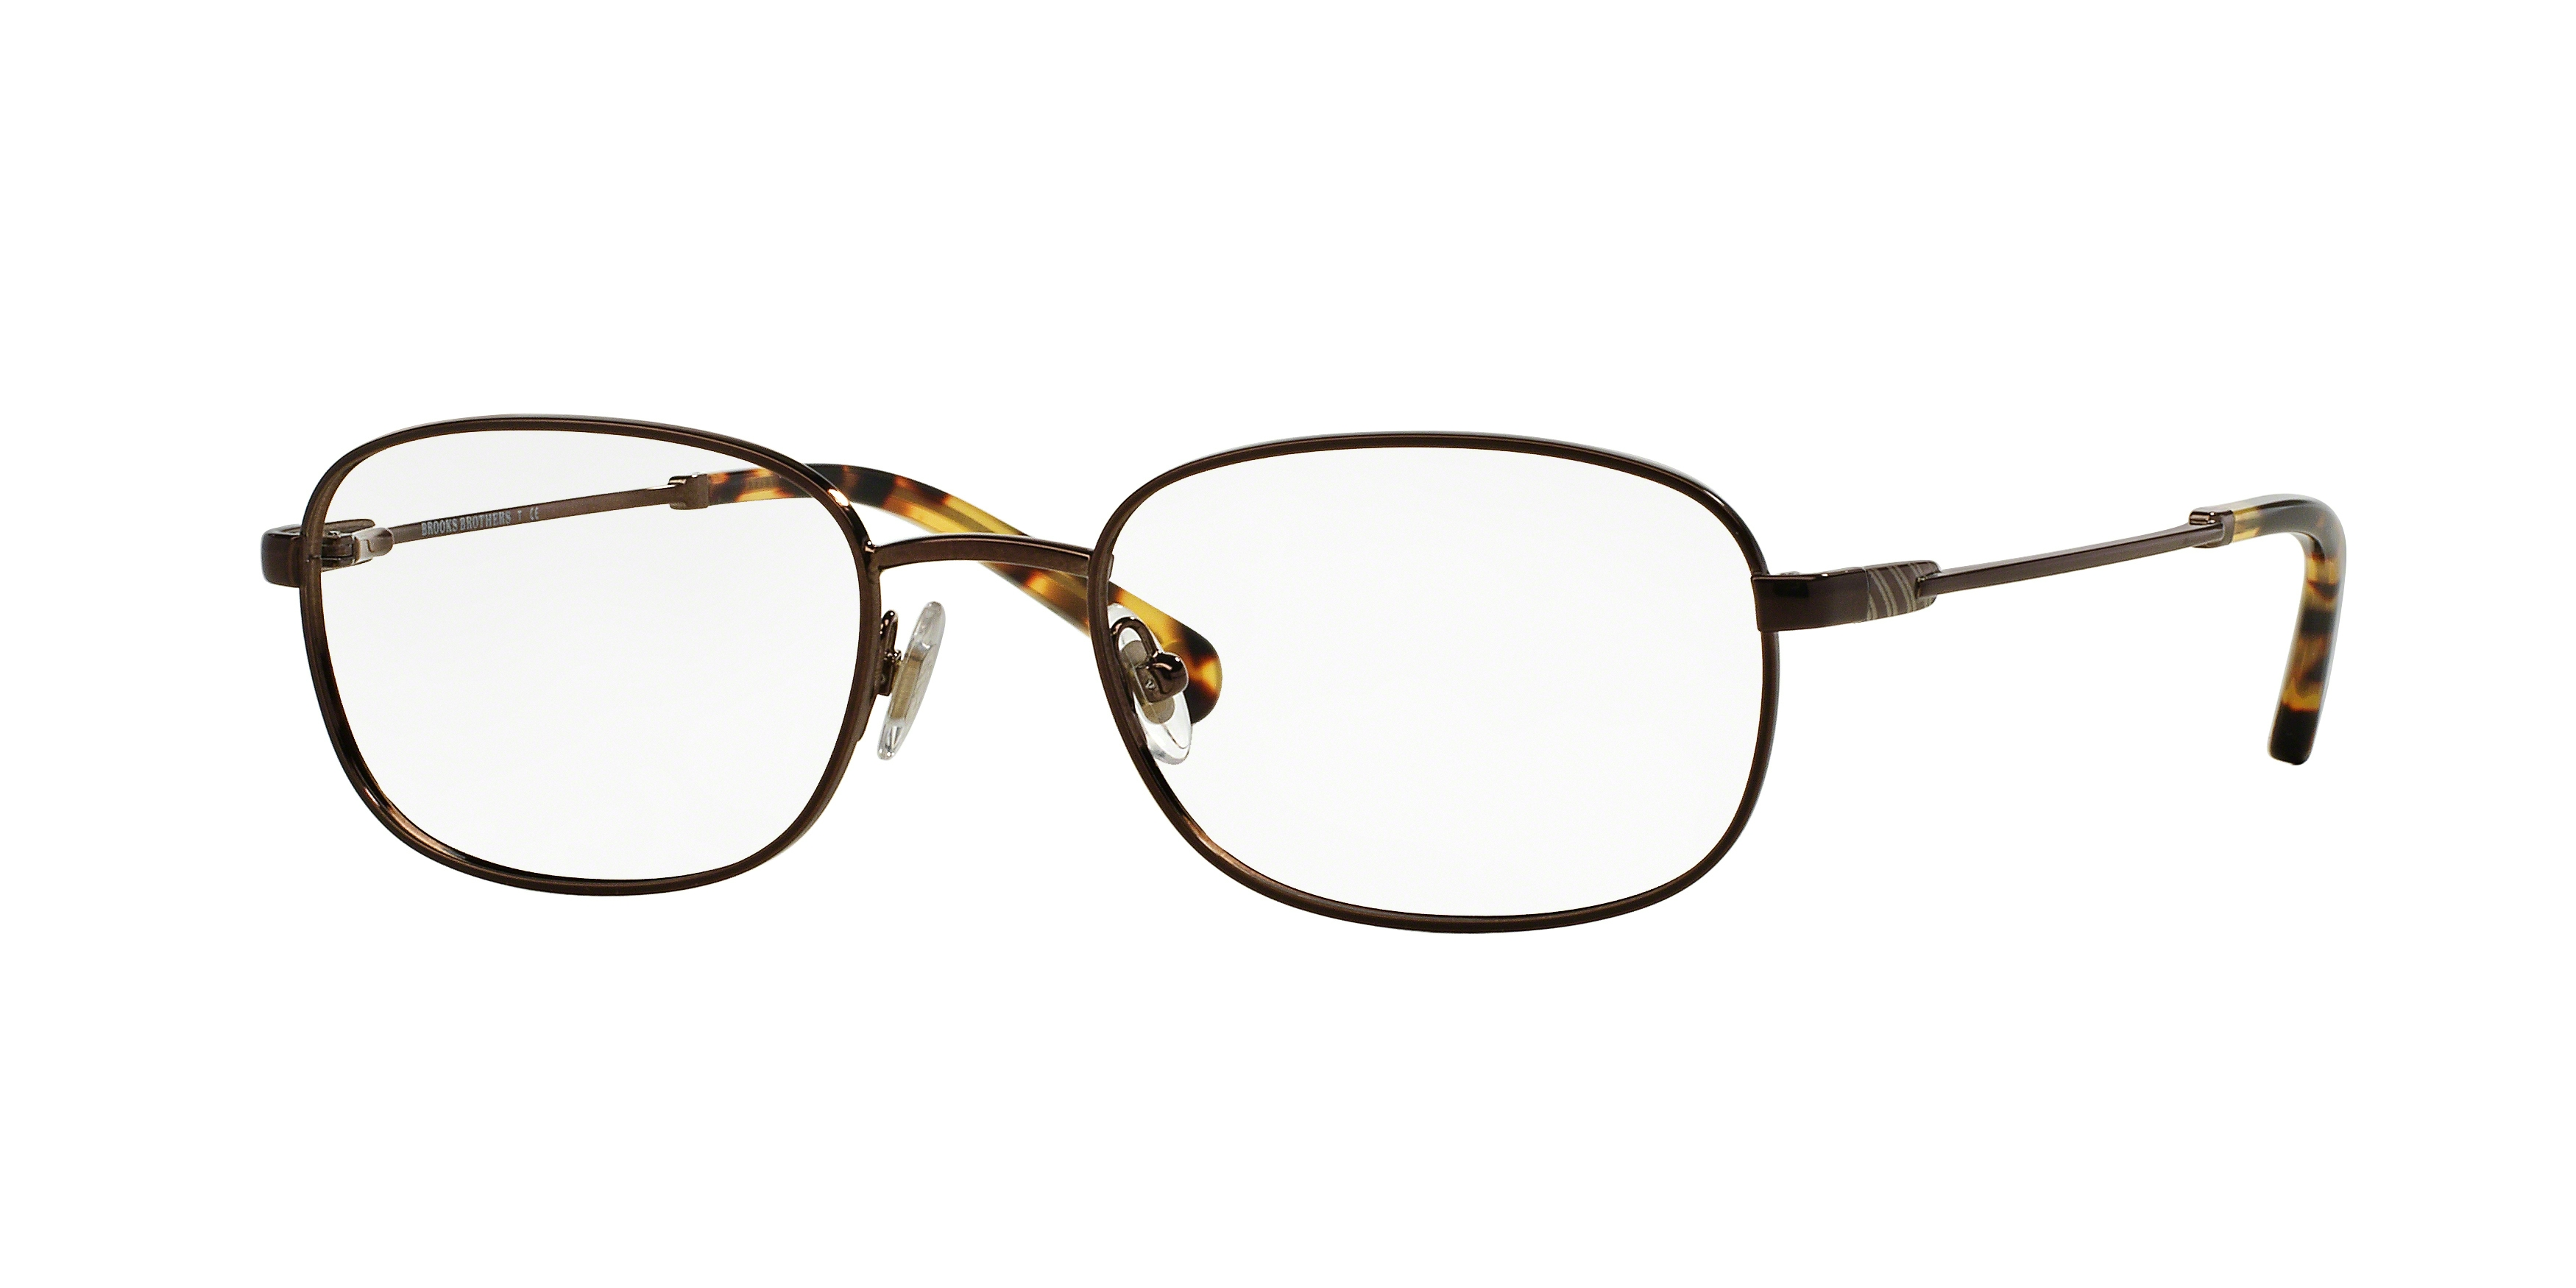 8a8e68fa9bd4 Brooks Brothers BB1014 BB1014 Eyeglass Frames | Up to 55% Off w/ Free  Shipping